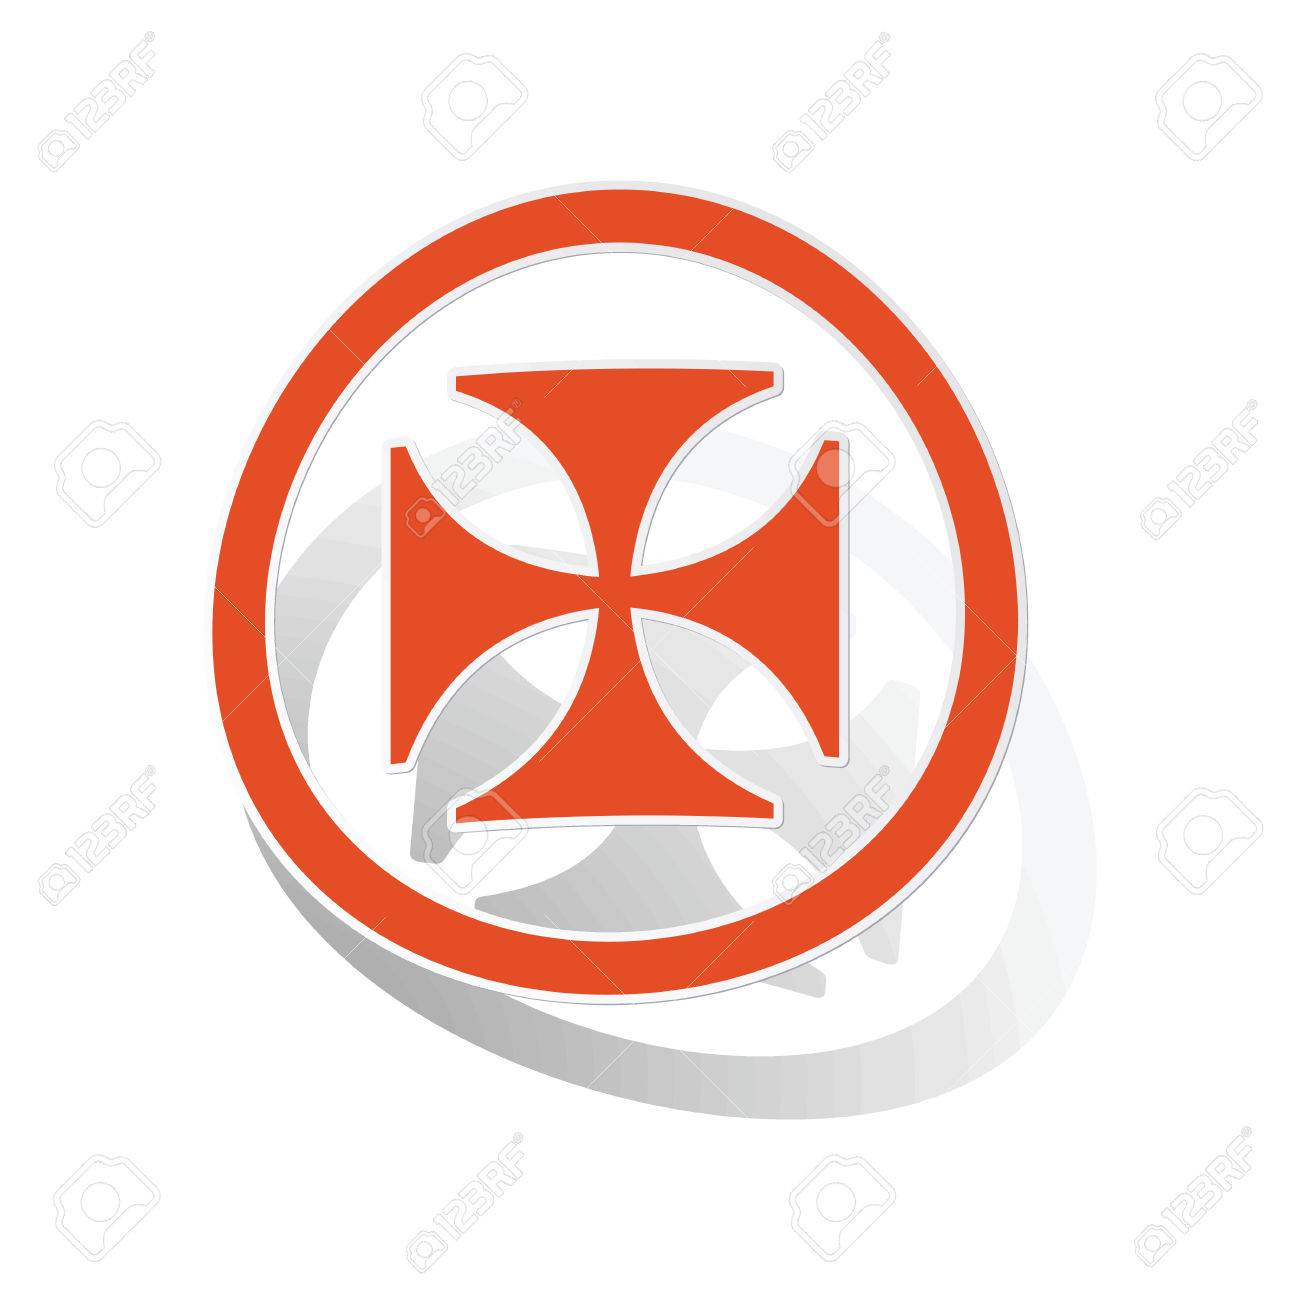 maltese cross sign sticker orange circle with image inside rh 123rf com